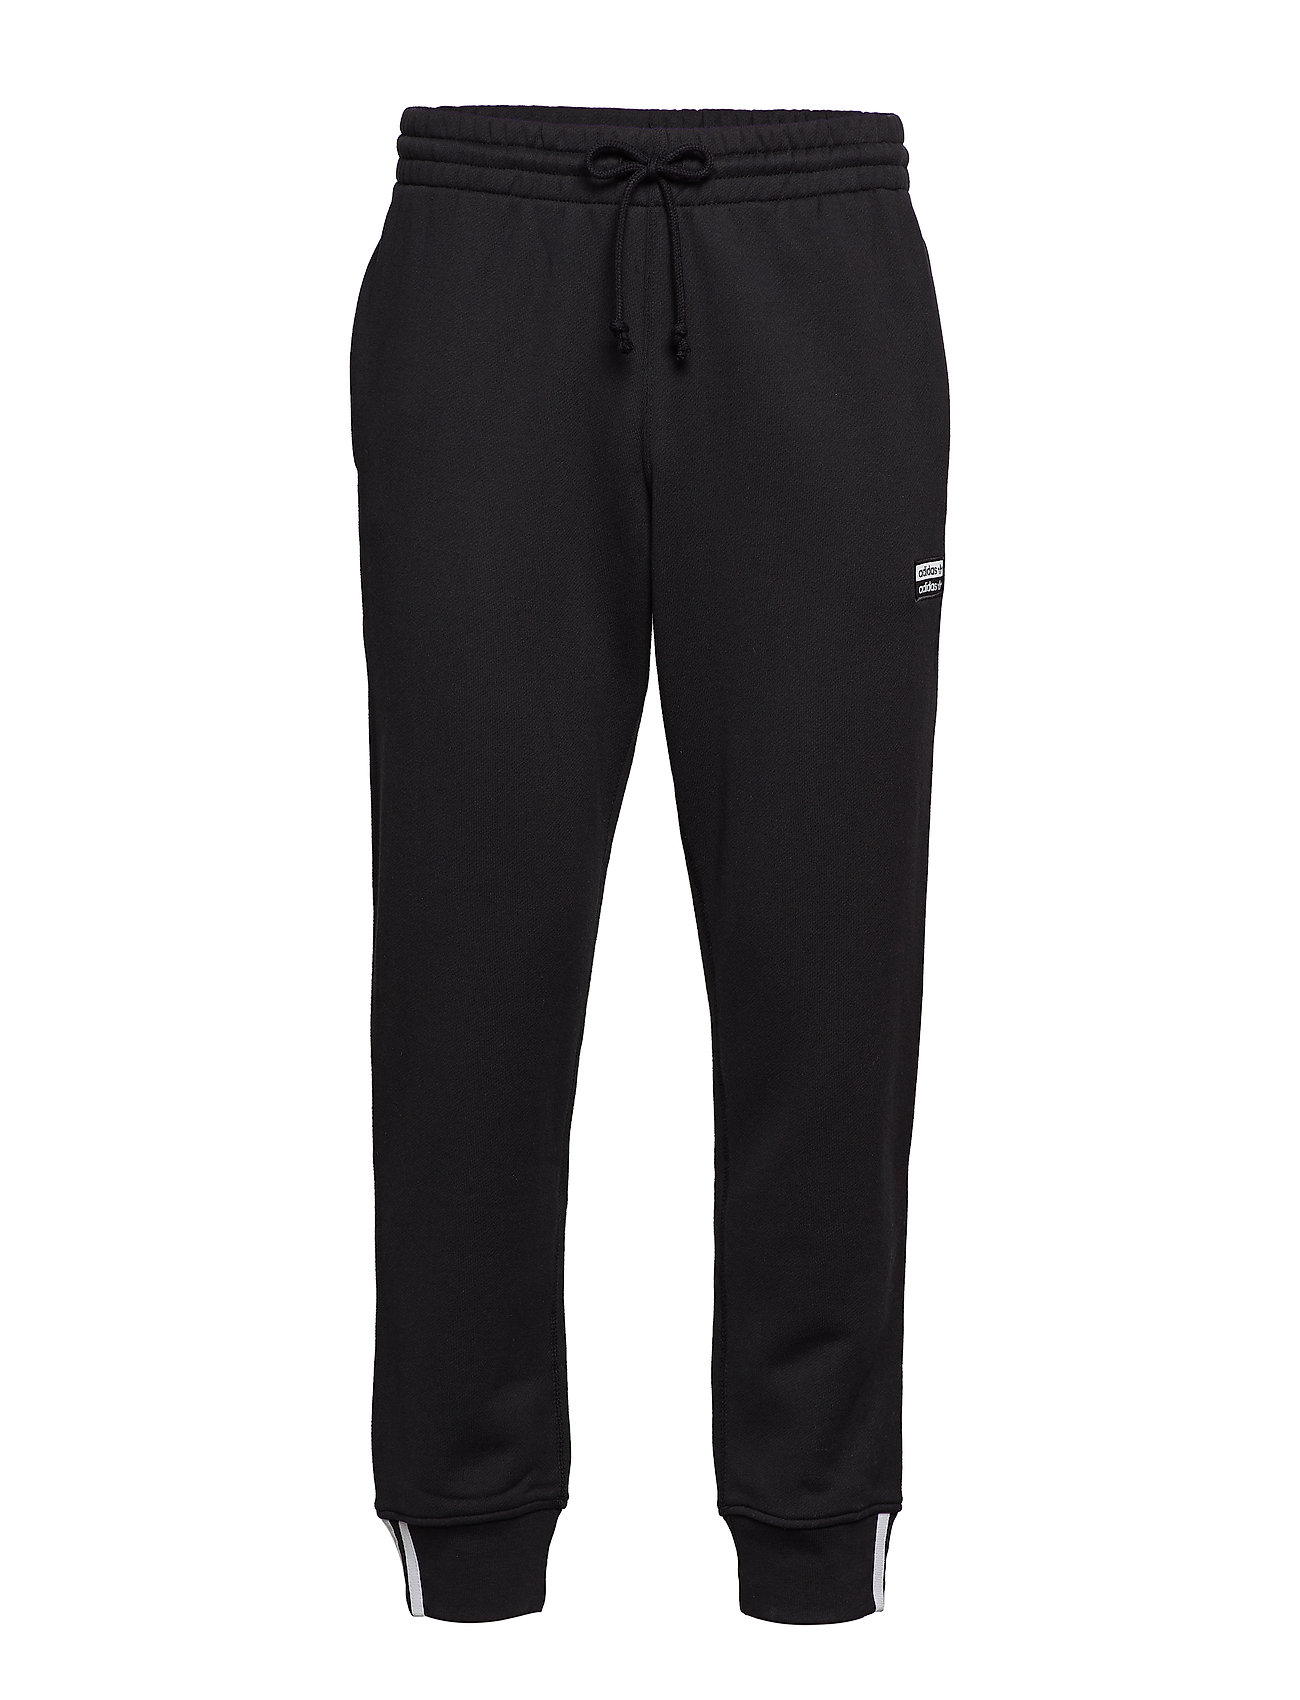 adidas Originals VOCAL SWEATPANT - BLACK